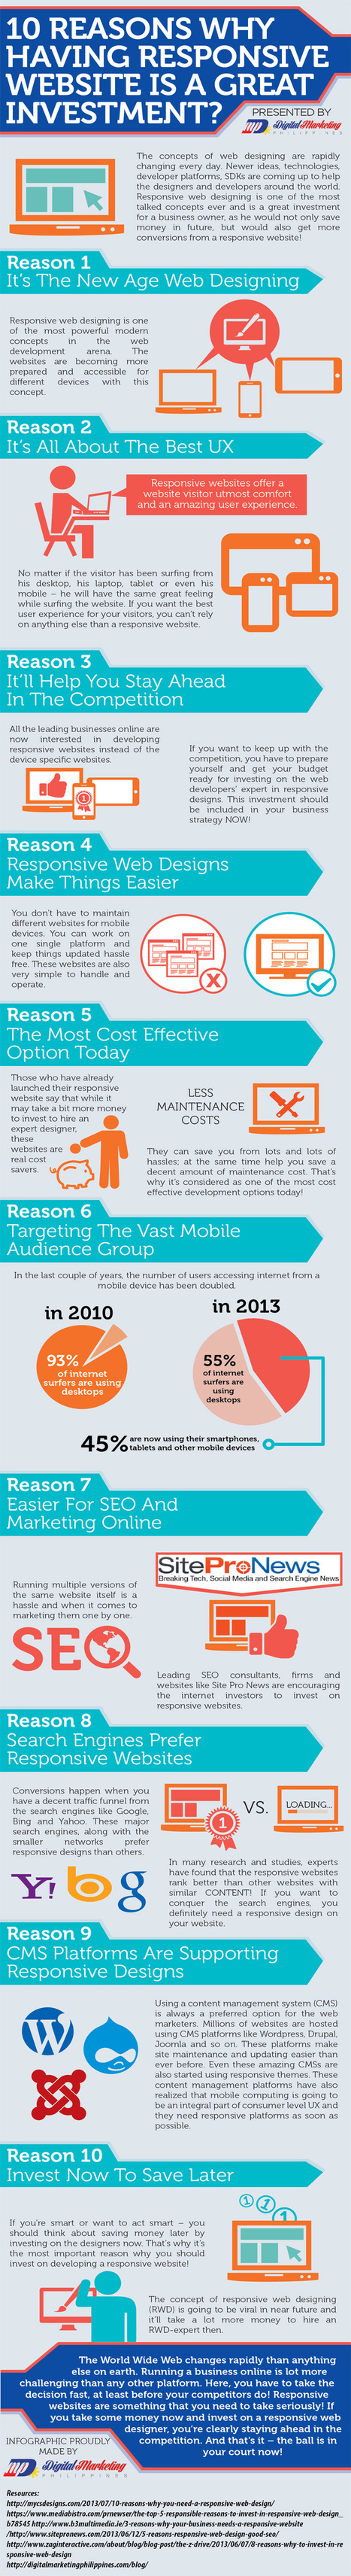 10 Reasons Why Having Responsive Website Is a Great Investment? (Infographic) | Digital-News on Scoop.it today | Scoop.it